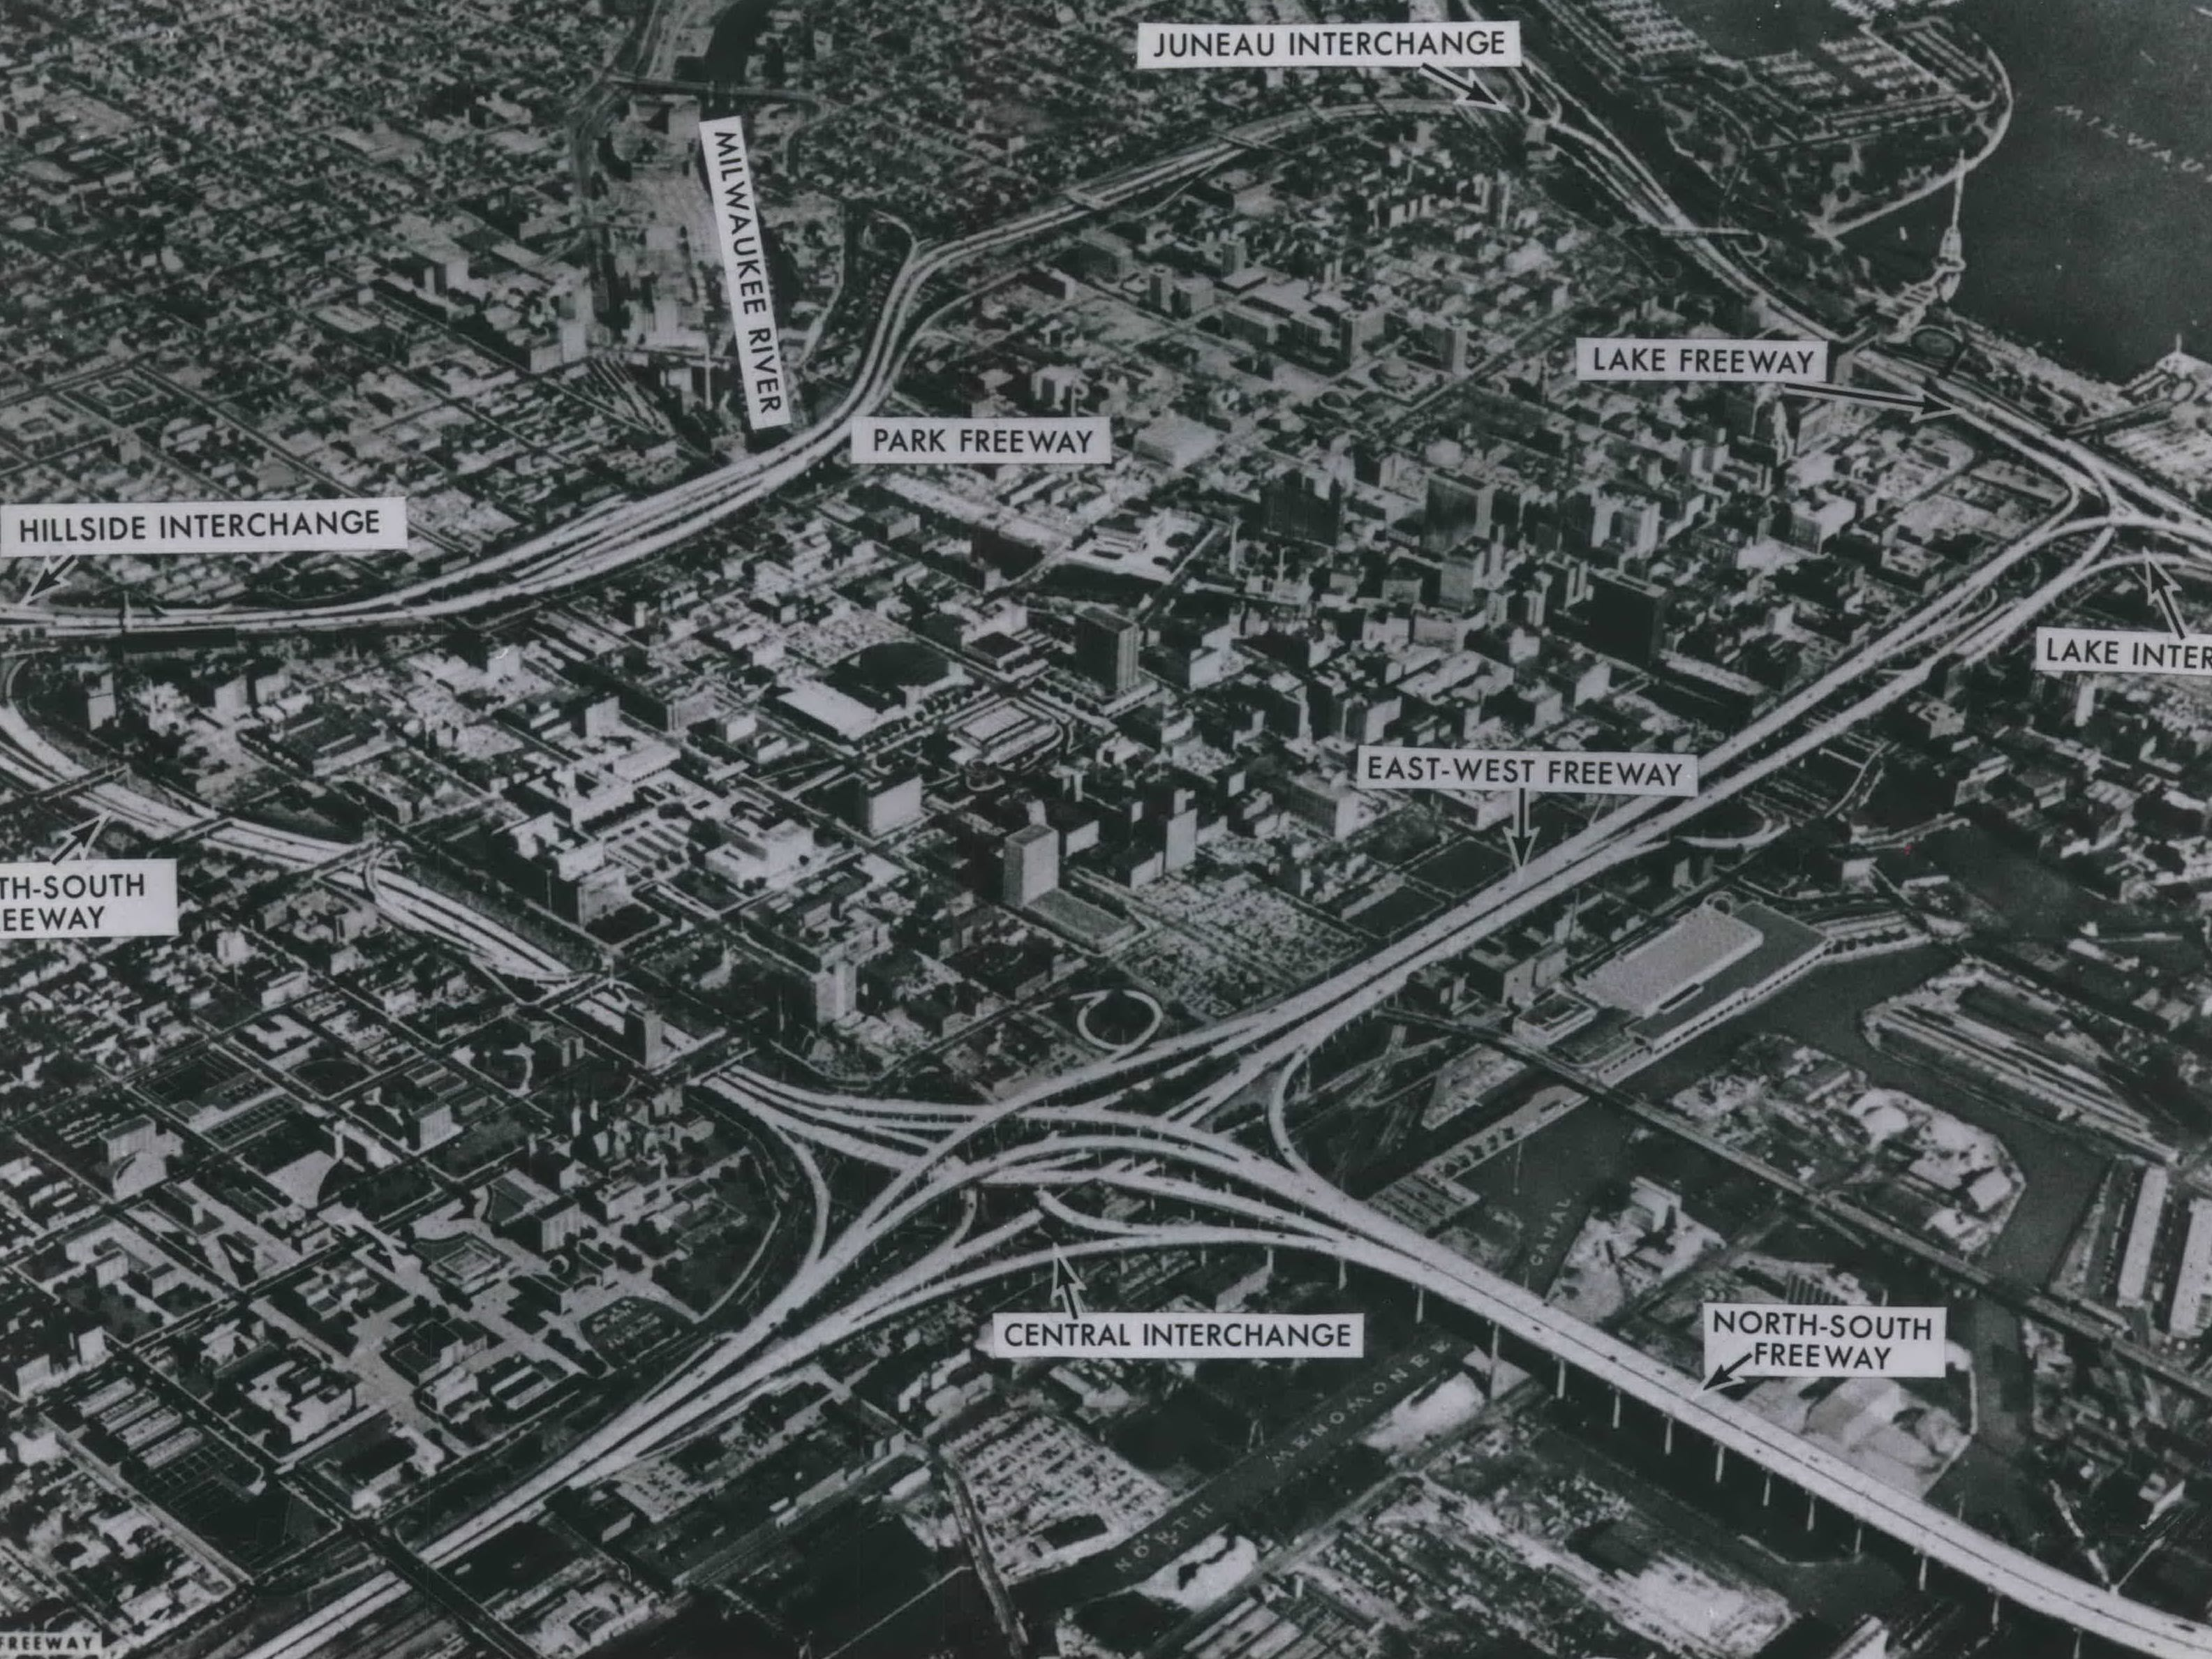 In 1965, planners envisioned Milwaukee's network of freeways as a coordinated loop. Among the freeways that weren't completed: the Park Freeway (at upper left) and the Lake Freeway (along Lake Michigan). This photo illustration, prepared for the County Expressway Commission by Howard, Needles, Tammen & Bergendoff, was published in the March 9, 1965, Milwaukee Sentinel.